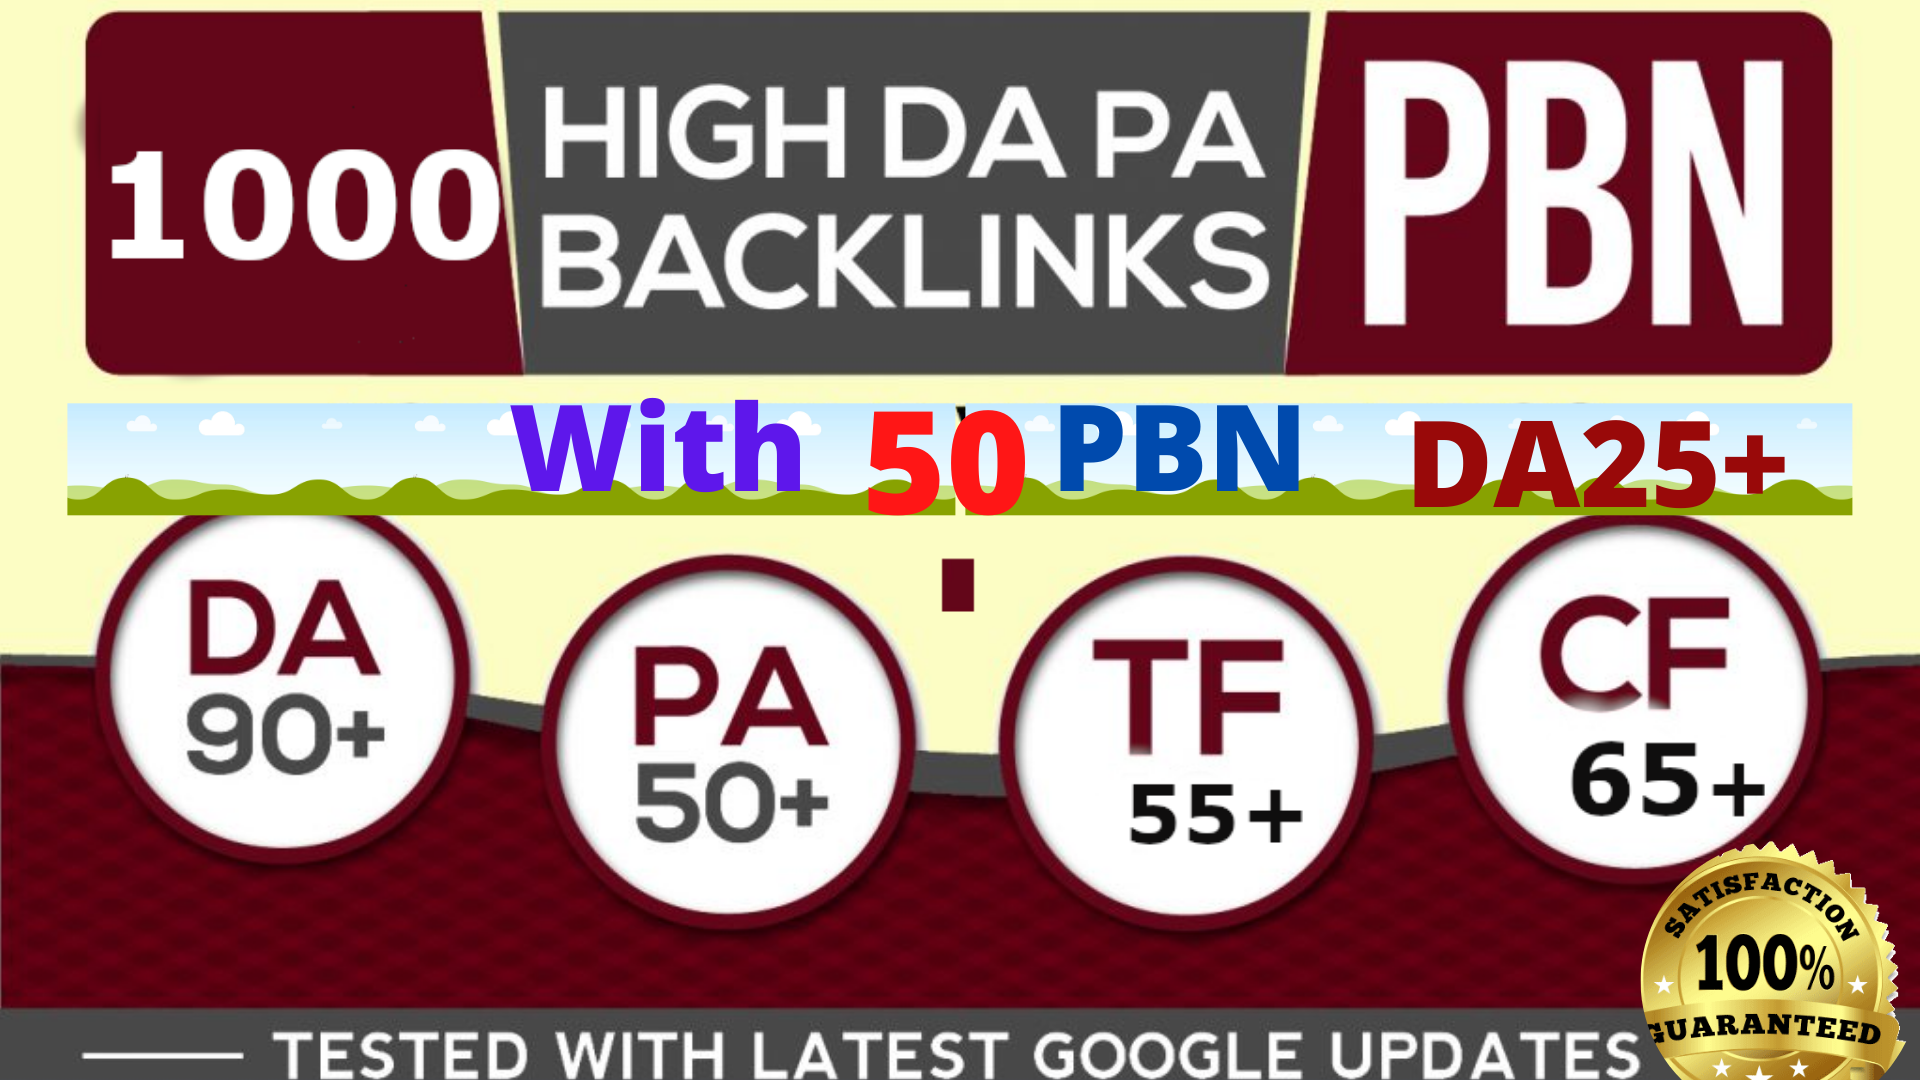 HIGH DA90+1000+web2.0 links and 50 PBN DA25+all exclusive Back-links